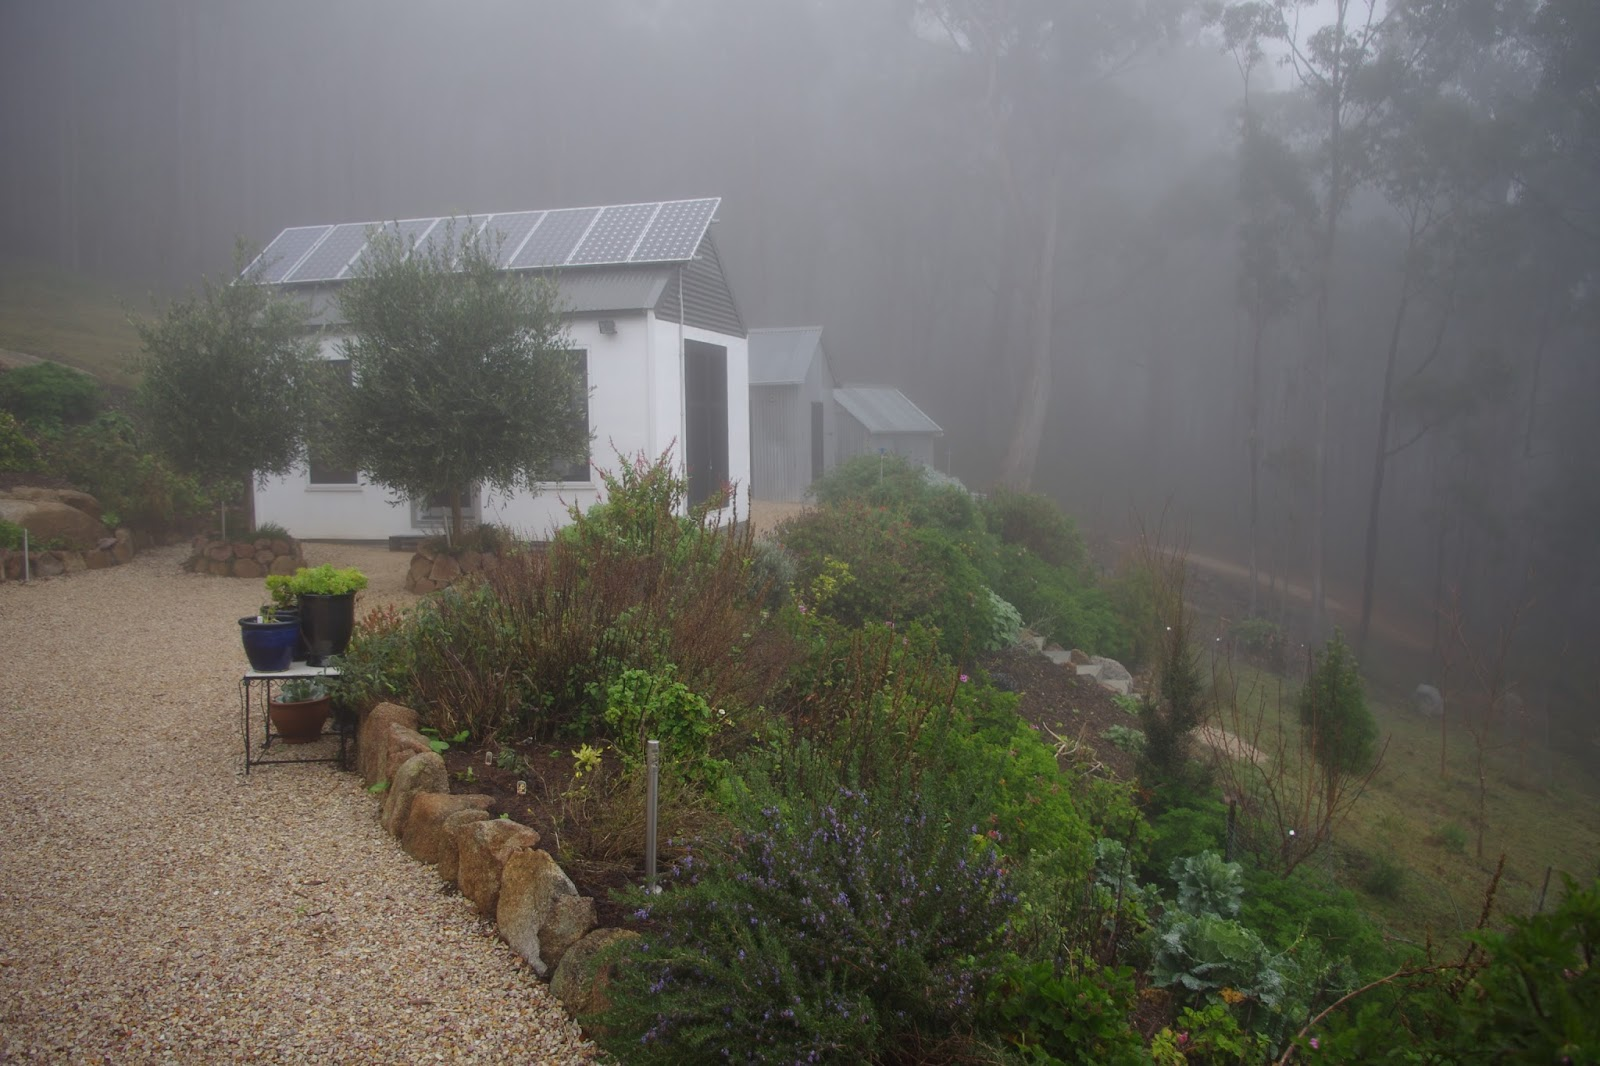 Fog and mist enveloped the farm for four consecutive days